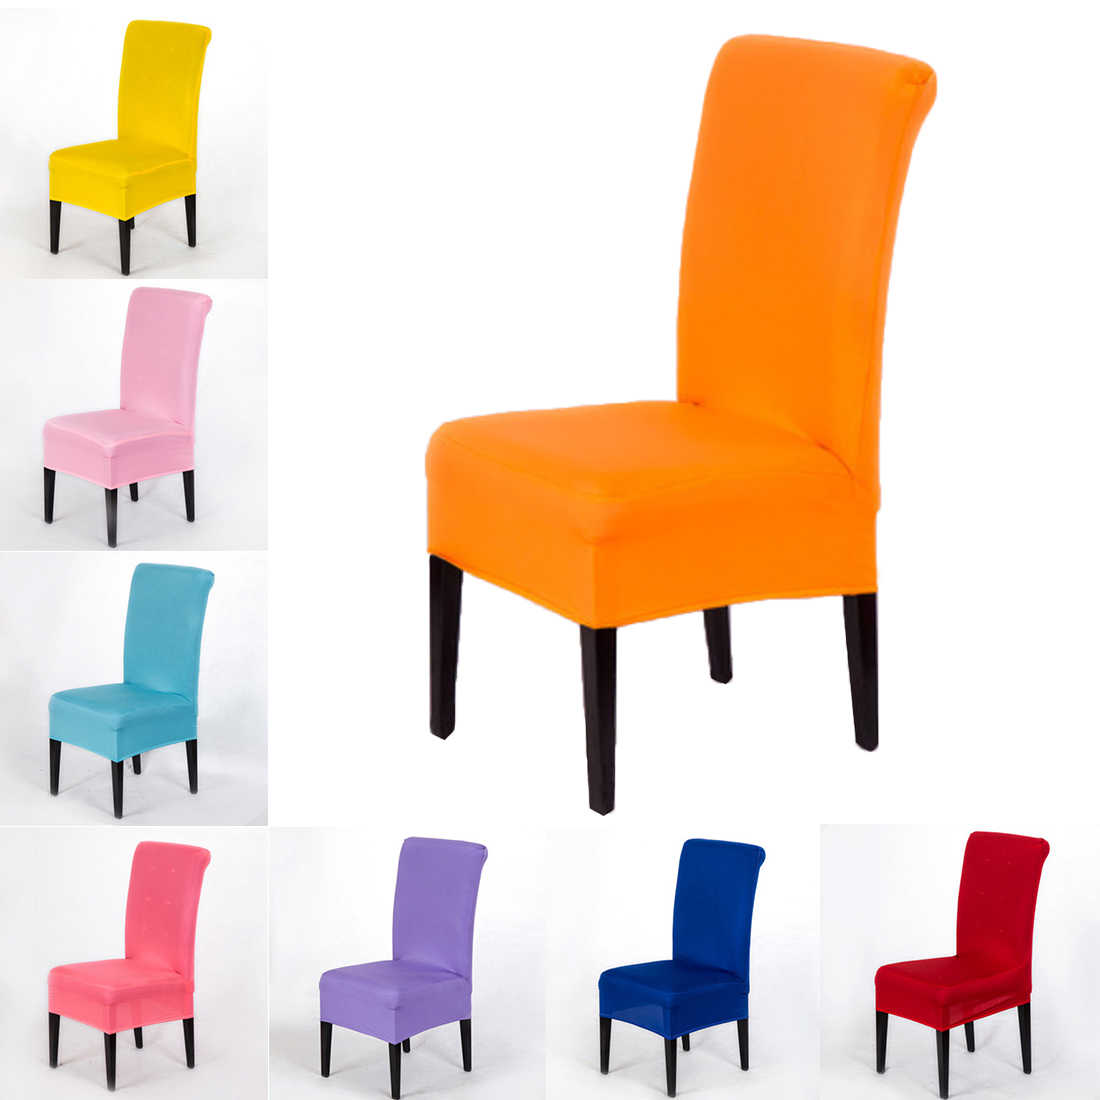 1pc modern spandex elastic stretch furniture covers housse de chaise slipcover seat case seat covers for